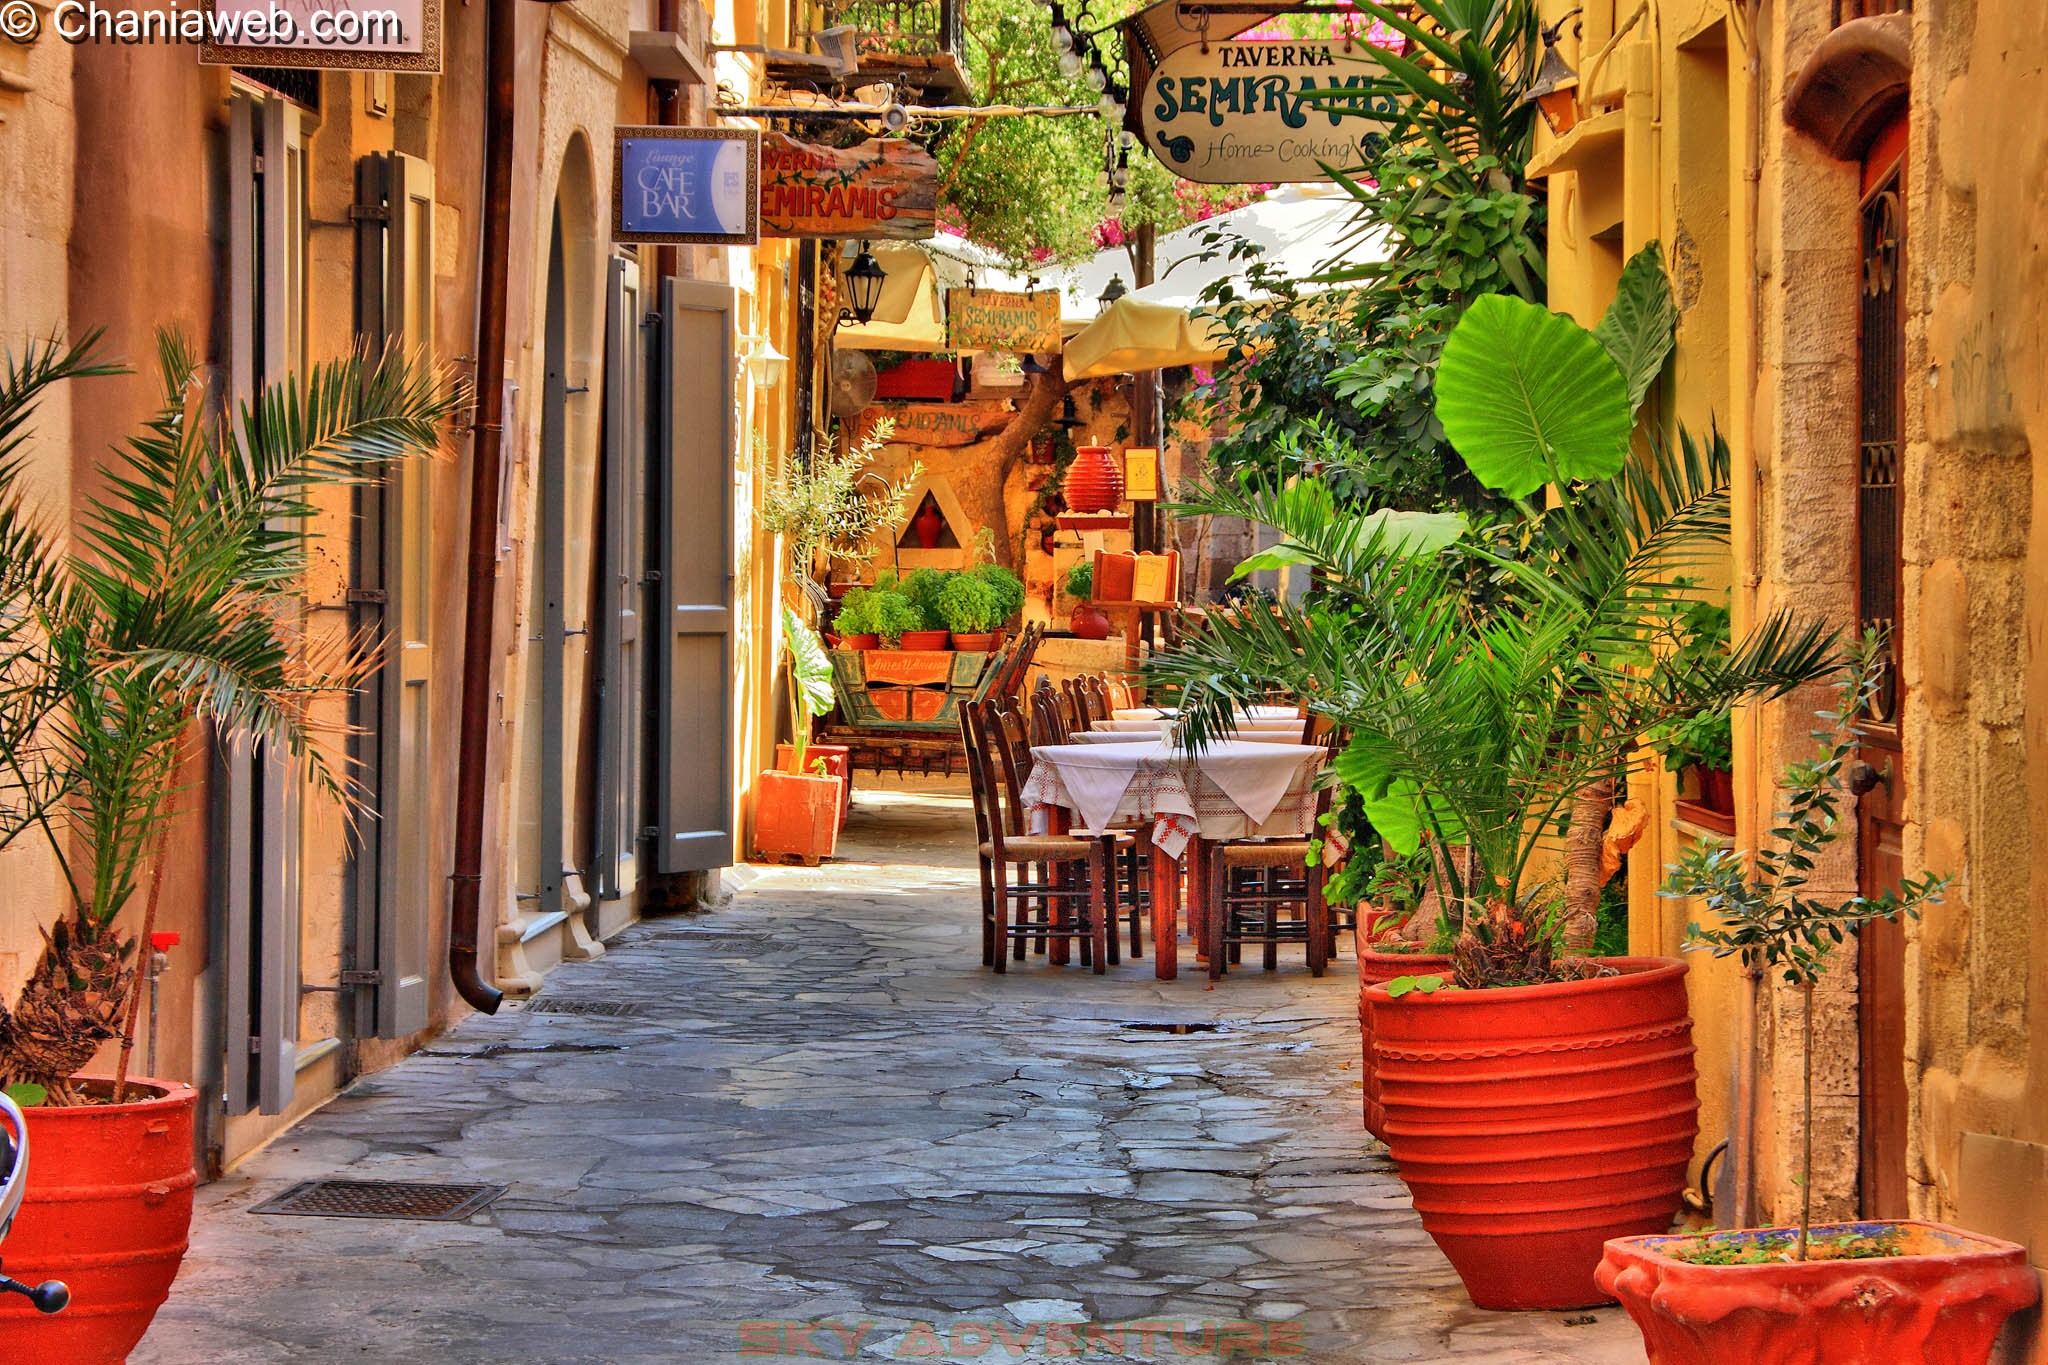 Visiting the Old Town in Chania, Greece